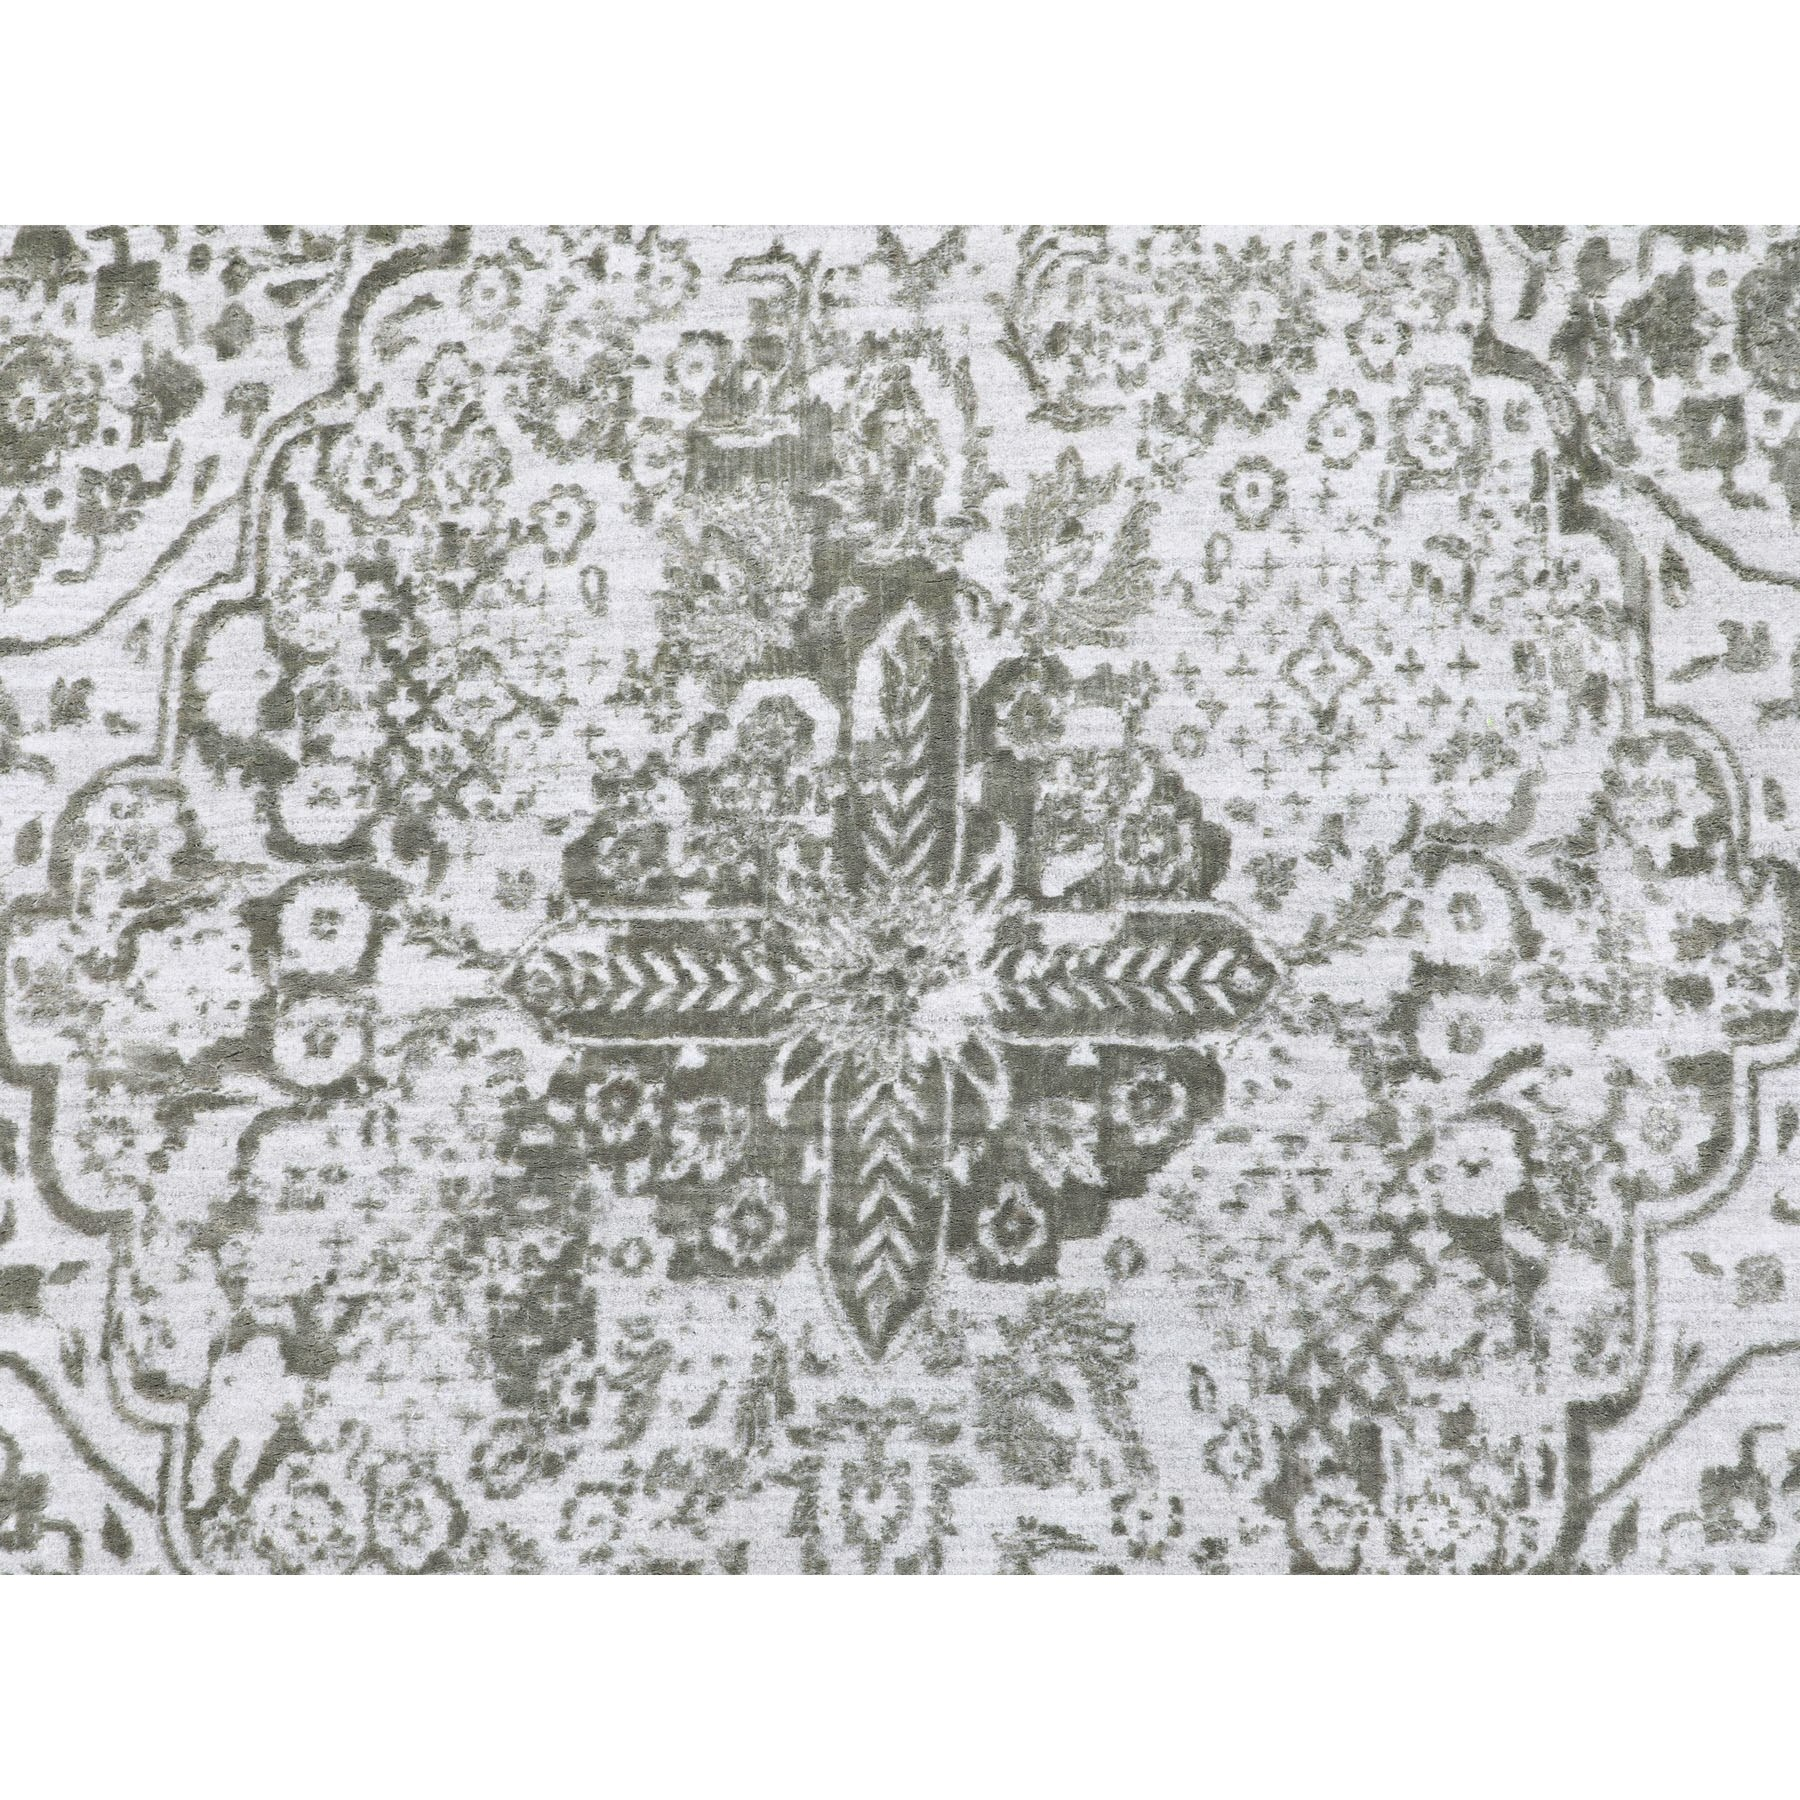 12'x18' Grey Broken Persian Design Wool And Pure Silk Hand Knotted Oriental Rug